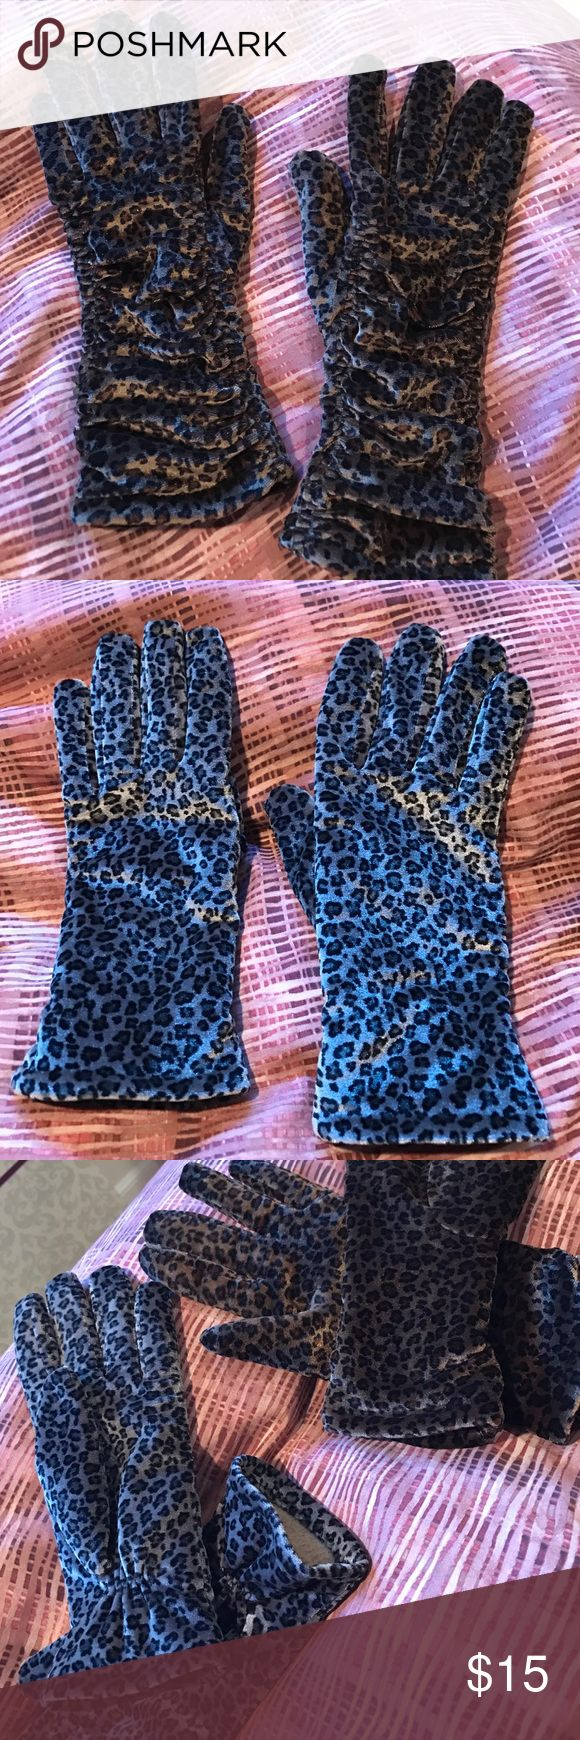 Cejon Leopard Print Velour Thinsulate Gloves! Like new!!! So soft and chic! Worn with love and care and have many many more years in them! Velour, lined and insulated. Sold out!!! One size fits all! Shell is 90% poly and 10% spandex / lining 100% poly / inner lining C -40 thinsulate 72% polyolefin 28 % polyester - you can hand wash!!!! They are cleaned! cejon  Accessories Gloves & Mittens